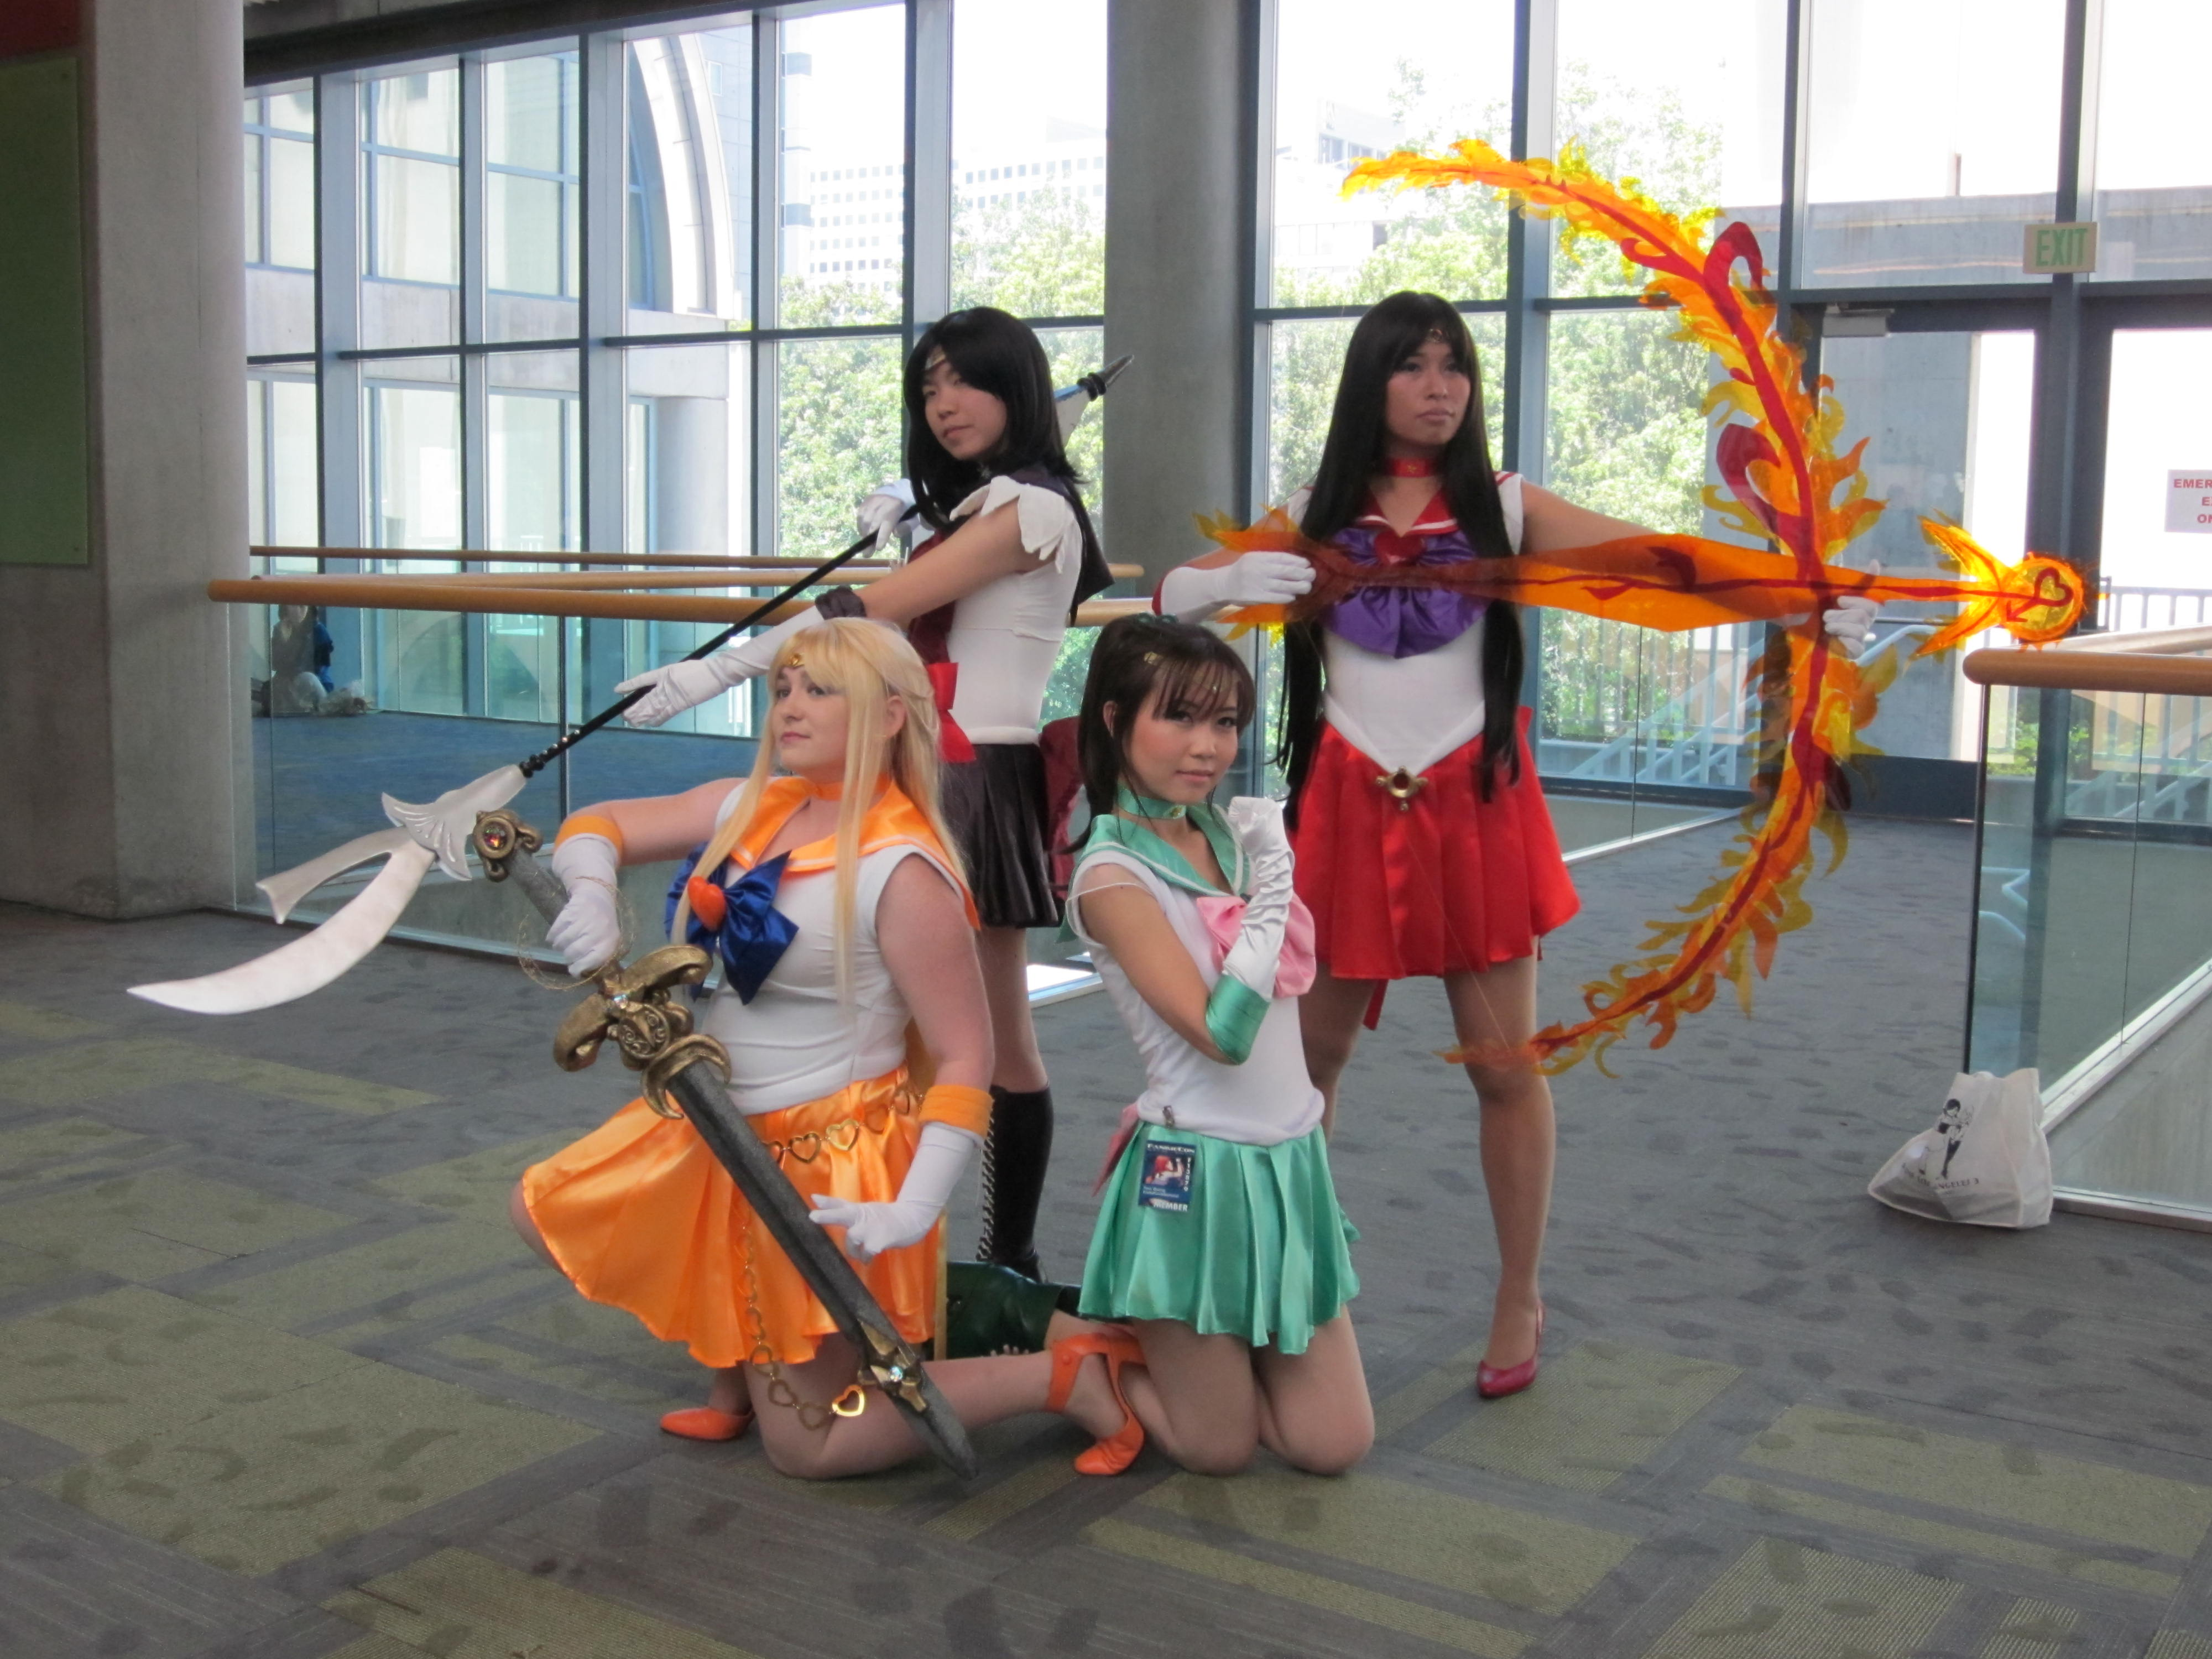 the world of cosplay essay This paper will be discussing the cosplay, or costume play, subculture in this paper,  the world of cosplay essay the world of cosplay.